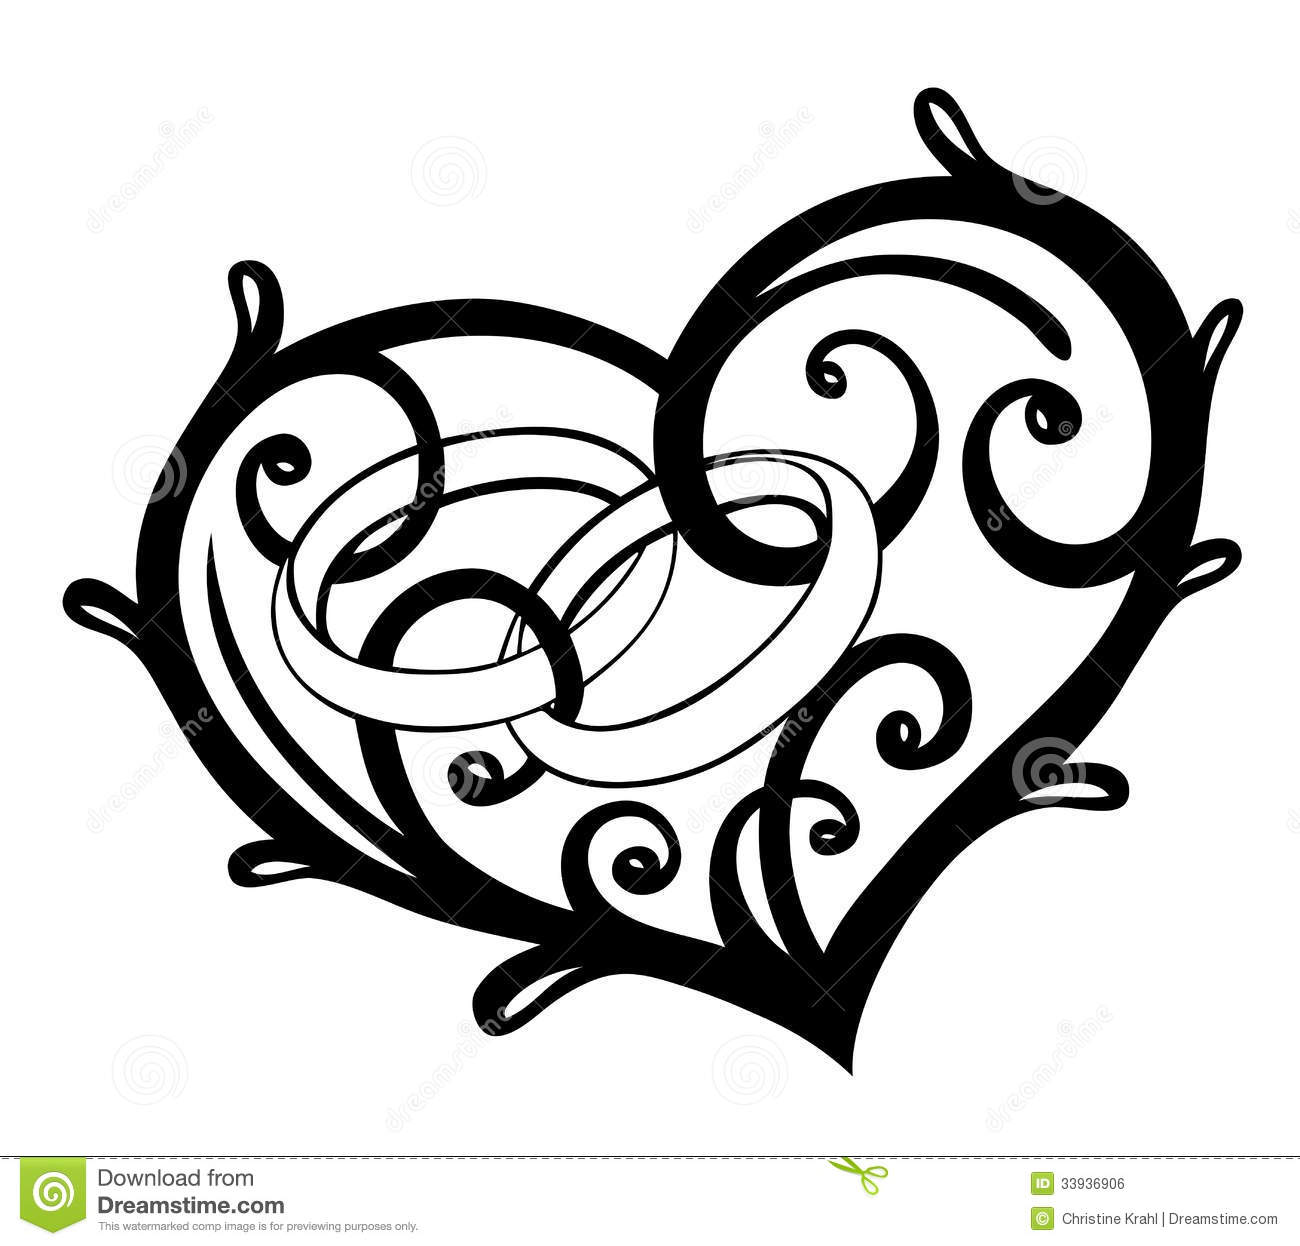 heart rings wedding stock vector illustration of card 33936906 rh dreamstime com wedding heart clipart vector wedding heart clipart free